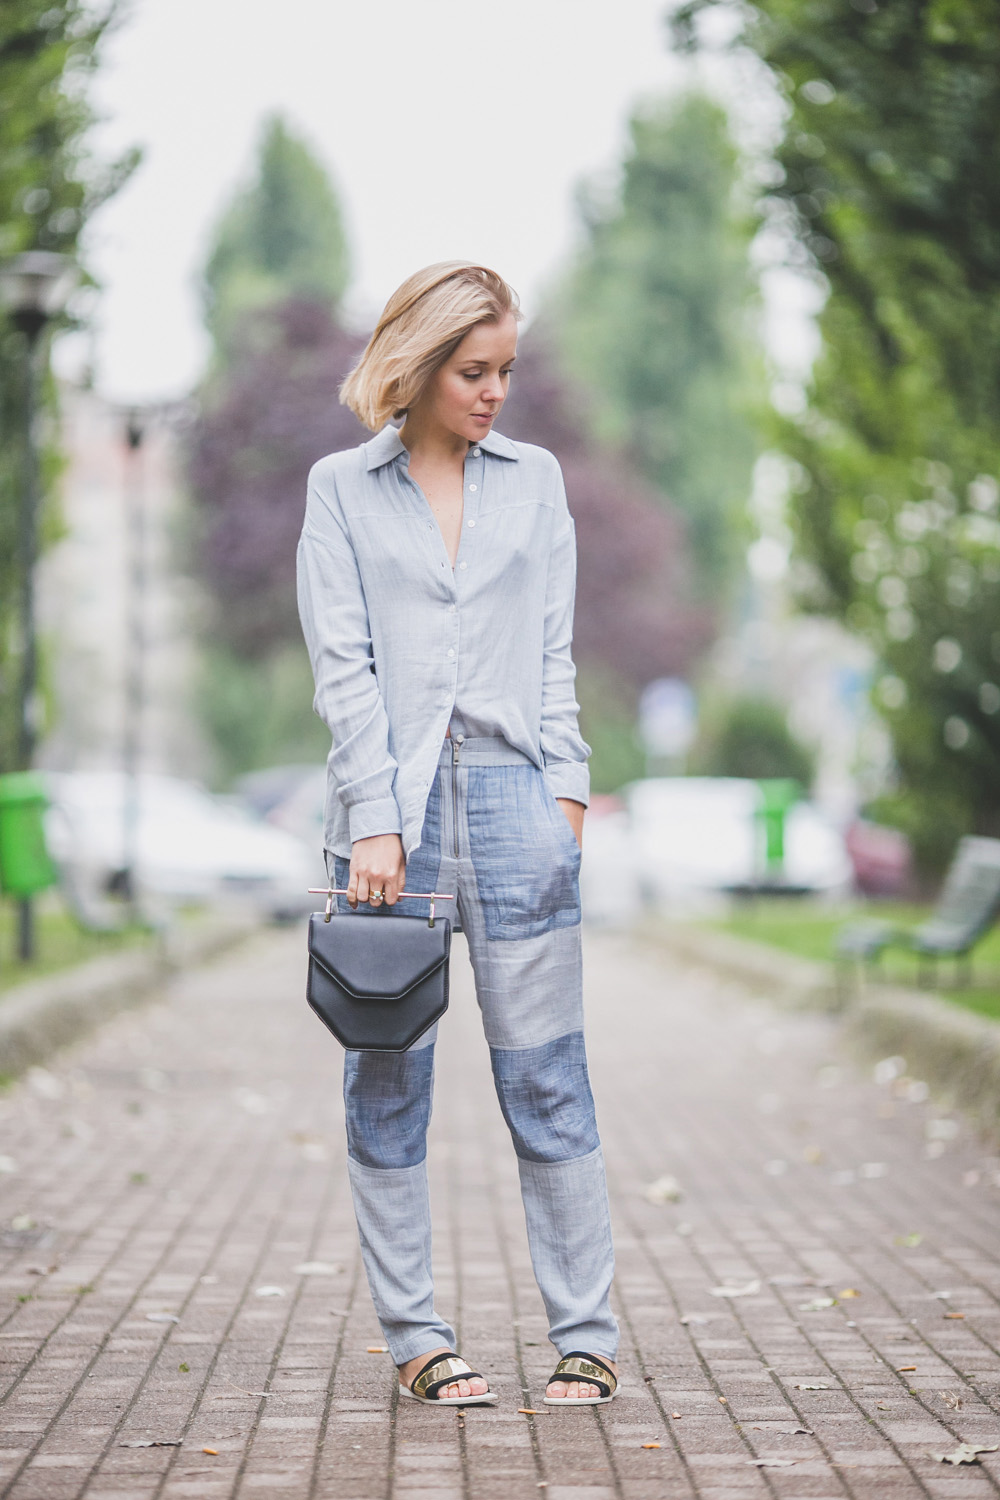 darya kamalova thecablook com russian italian fashion lifestyle blogger in milan for mfw ss15 wearing gat rimon pijamas suit zara flats m2malletier bag on iceberg fashion show-5368